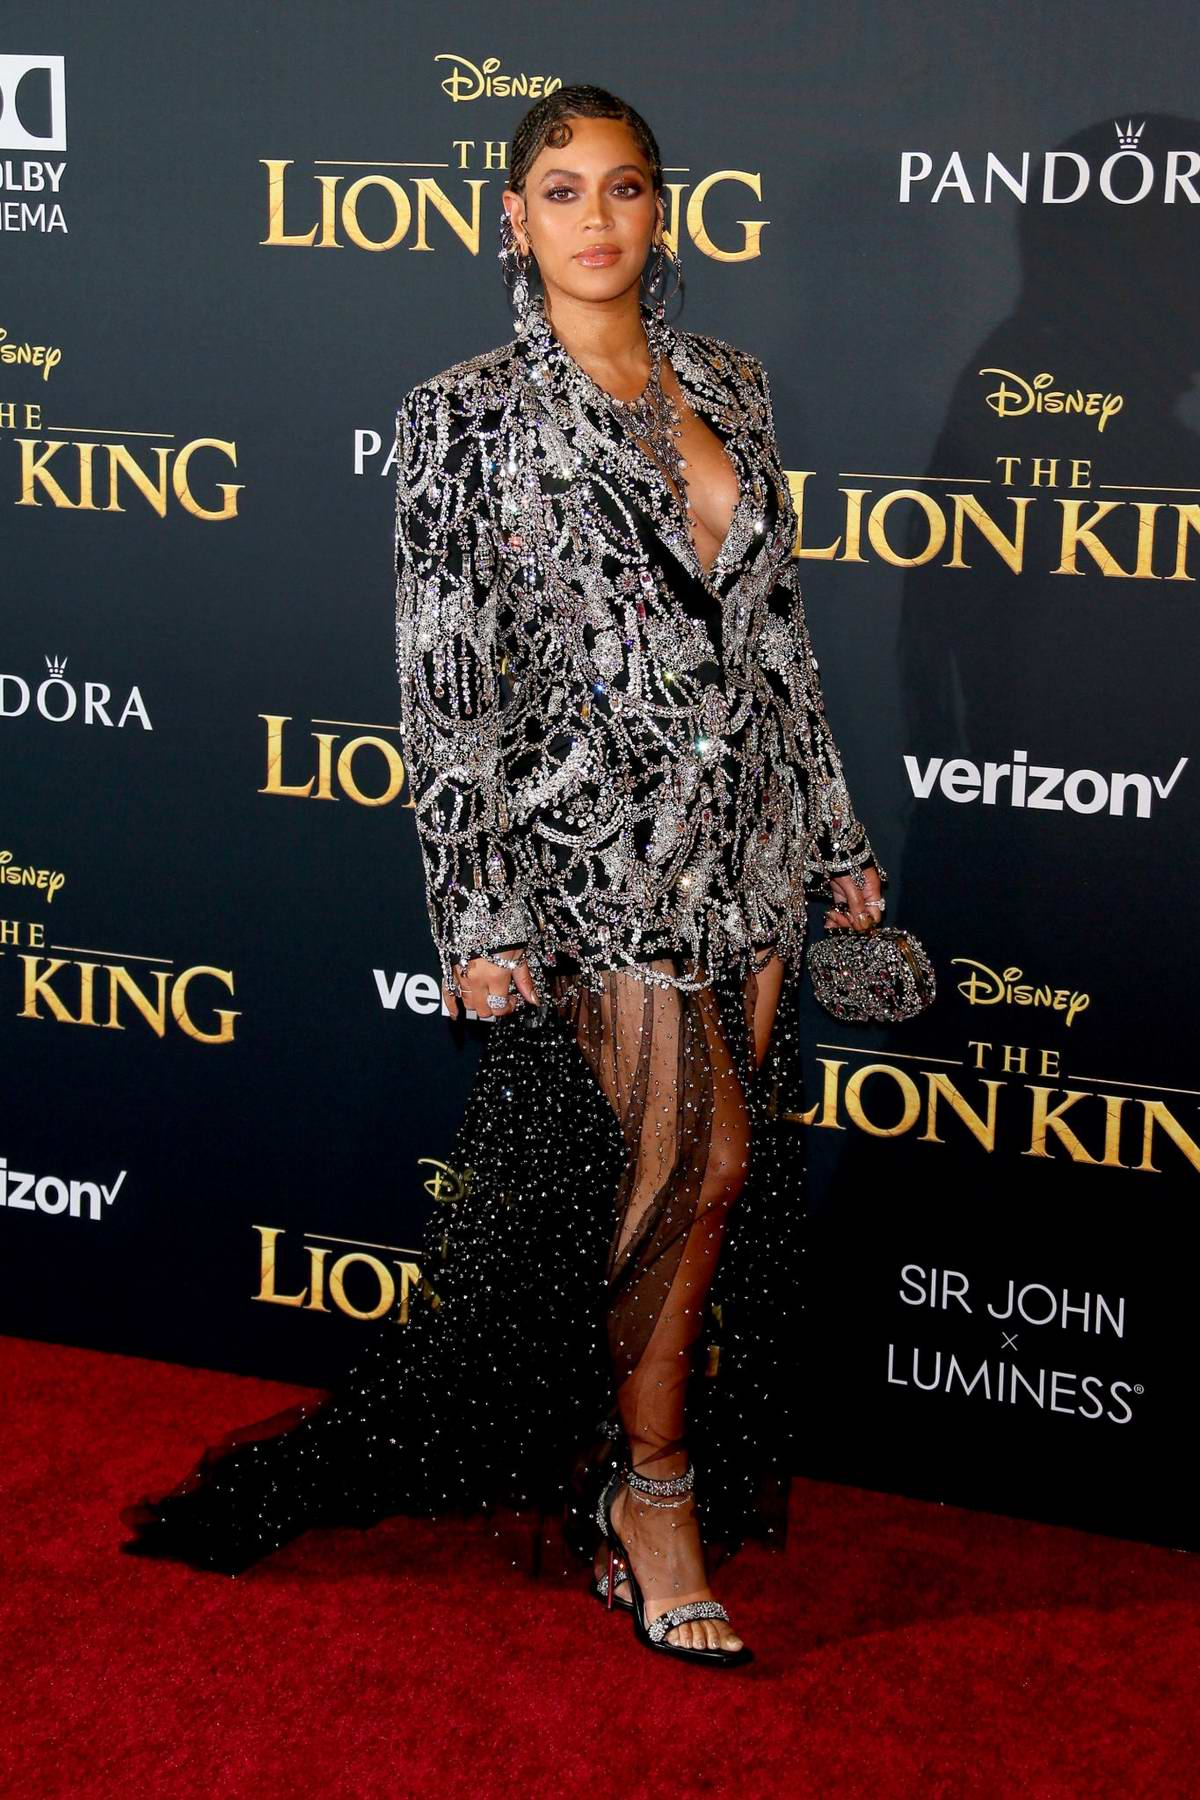 Beyoncé attends the premiere of Disney's 'The Lion King' at Dolby Theatre in Hollywood, California